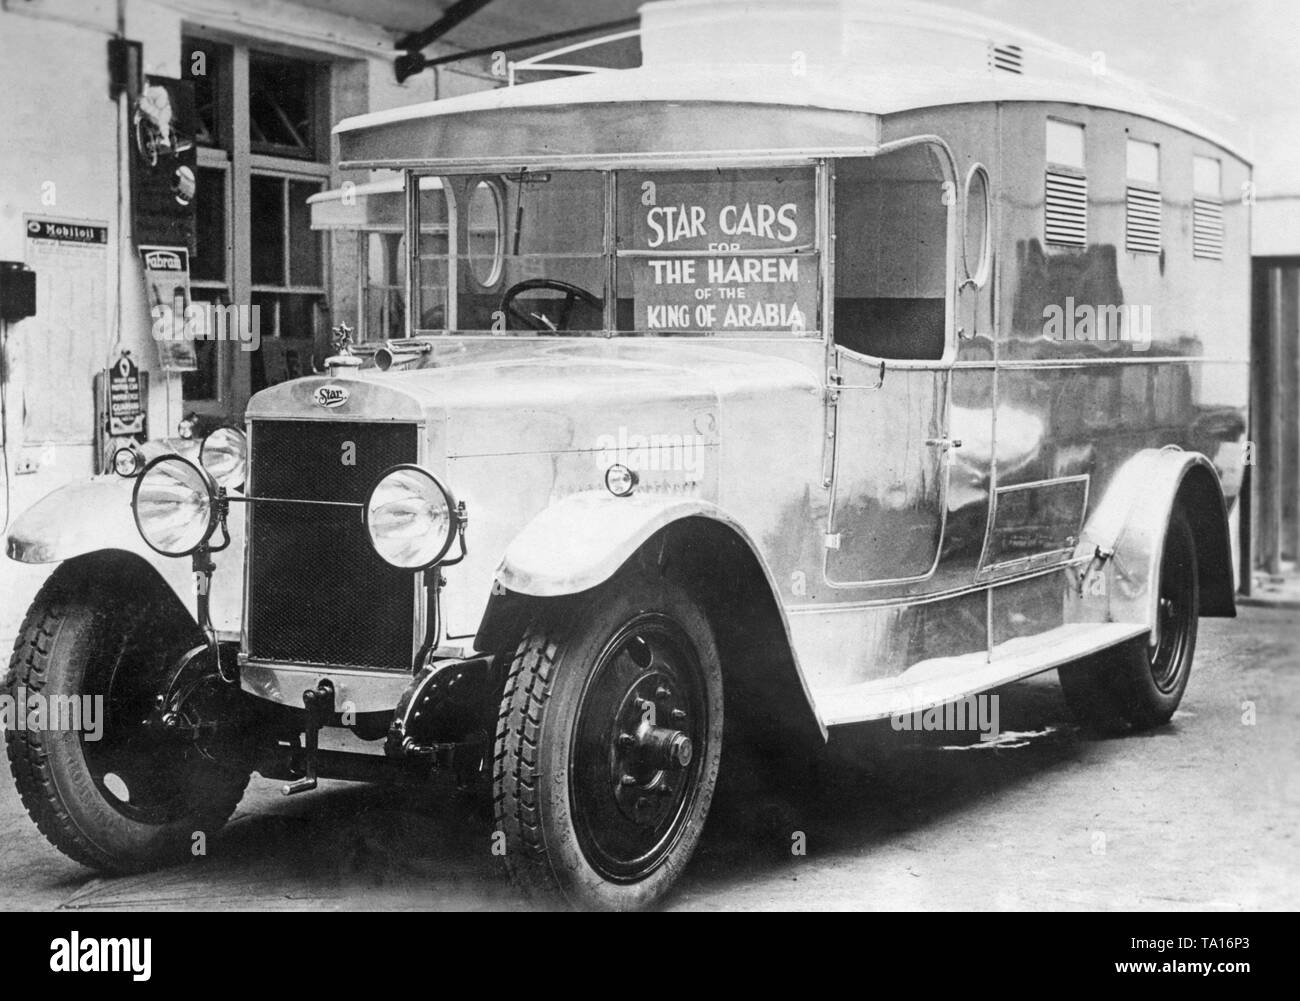 Used Cars Black and White Stock Photos & Images - Alamy